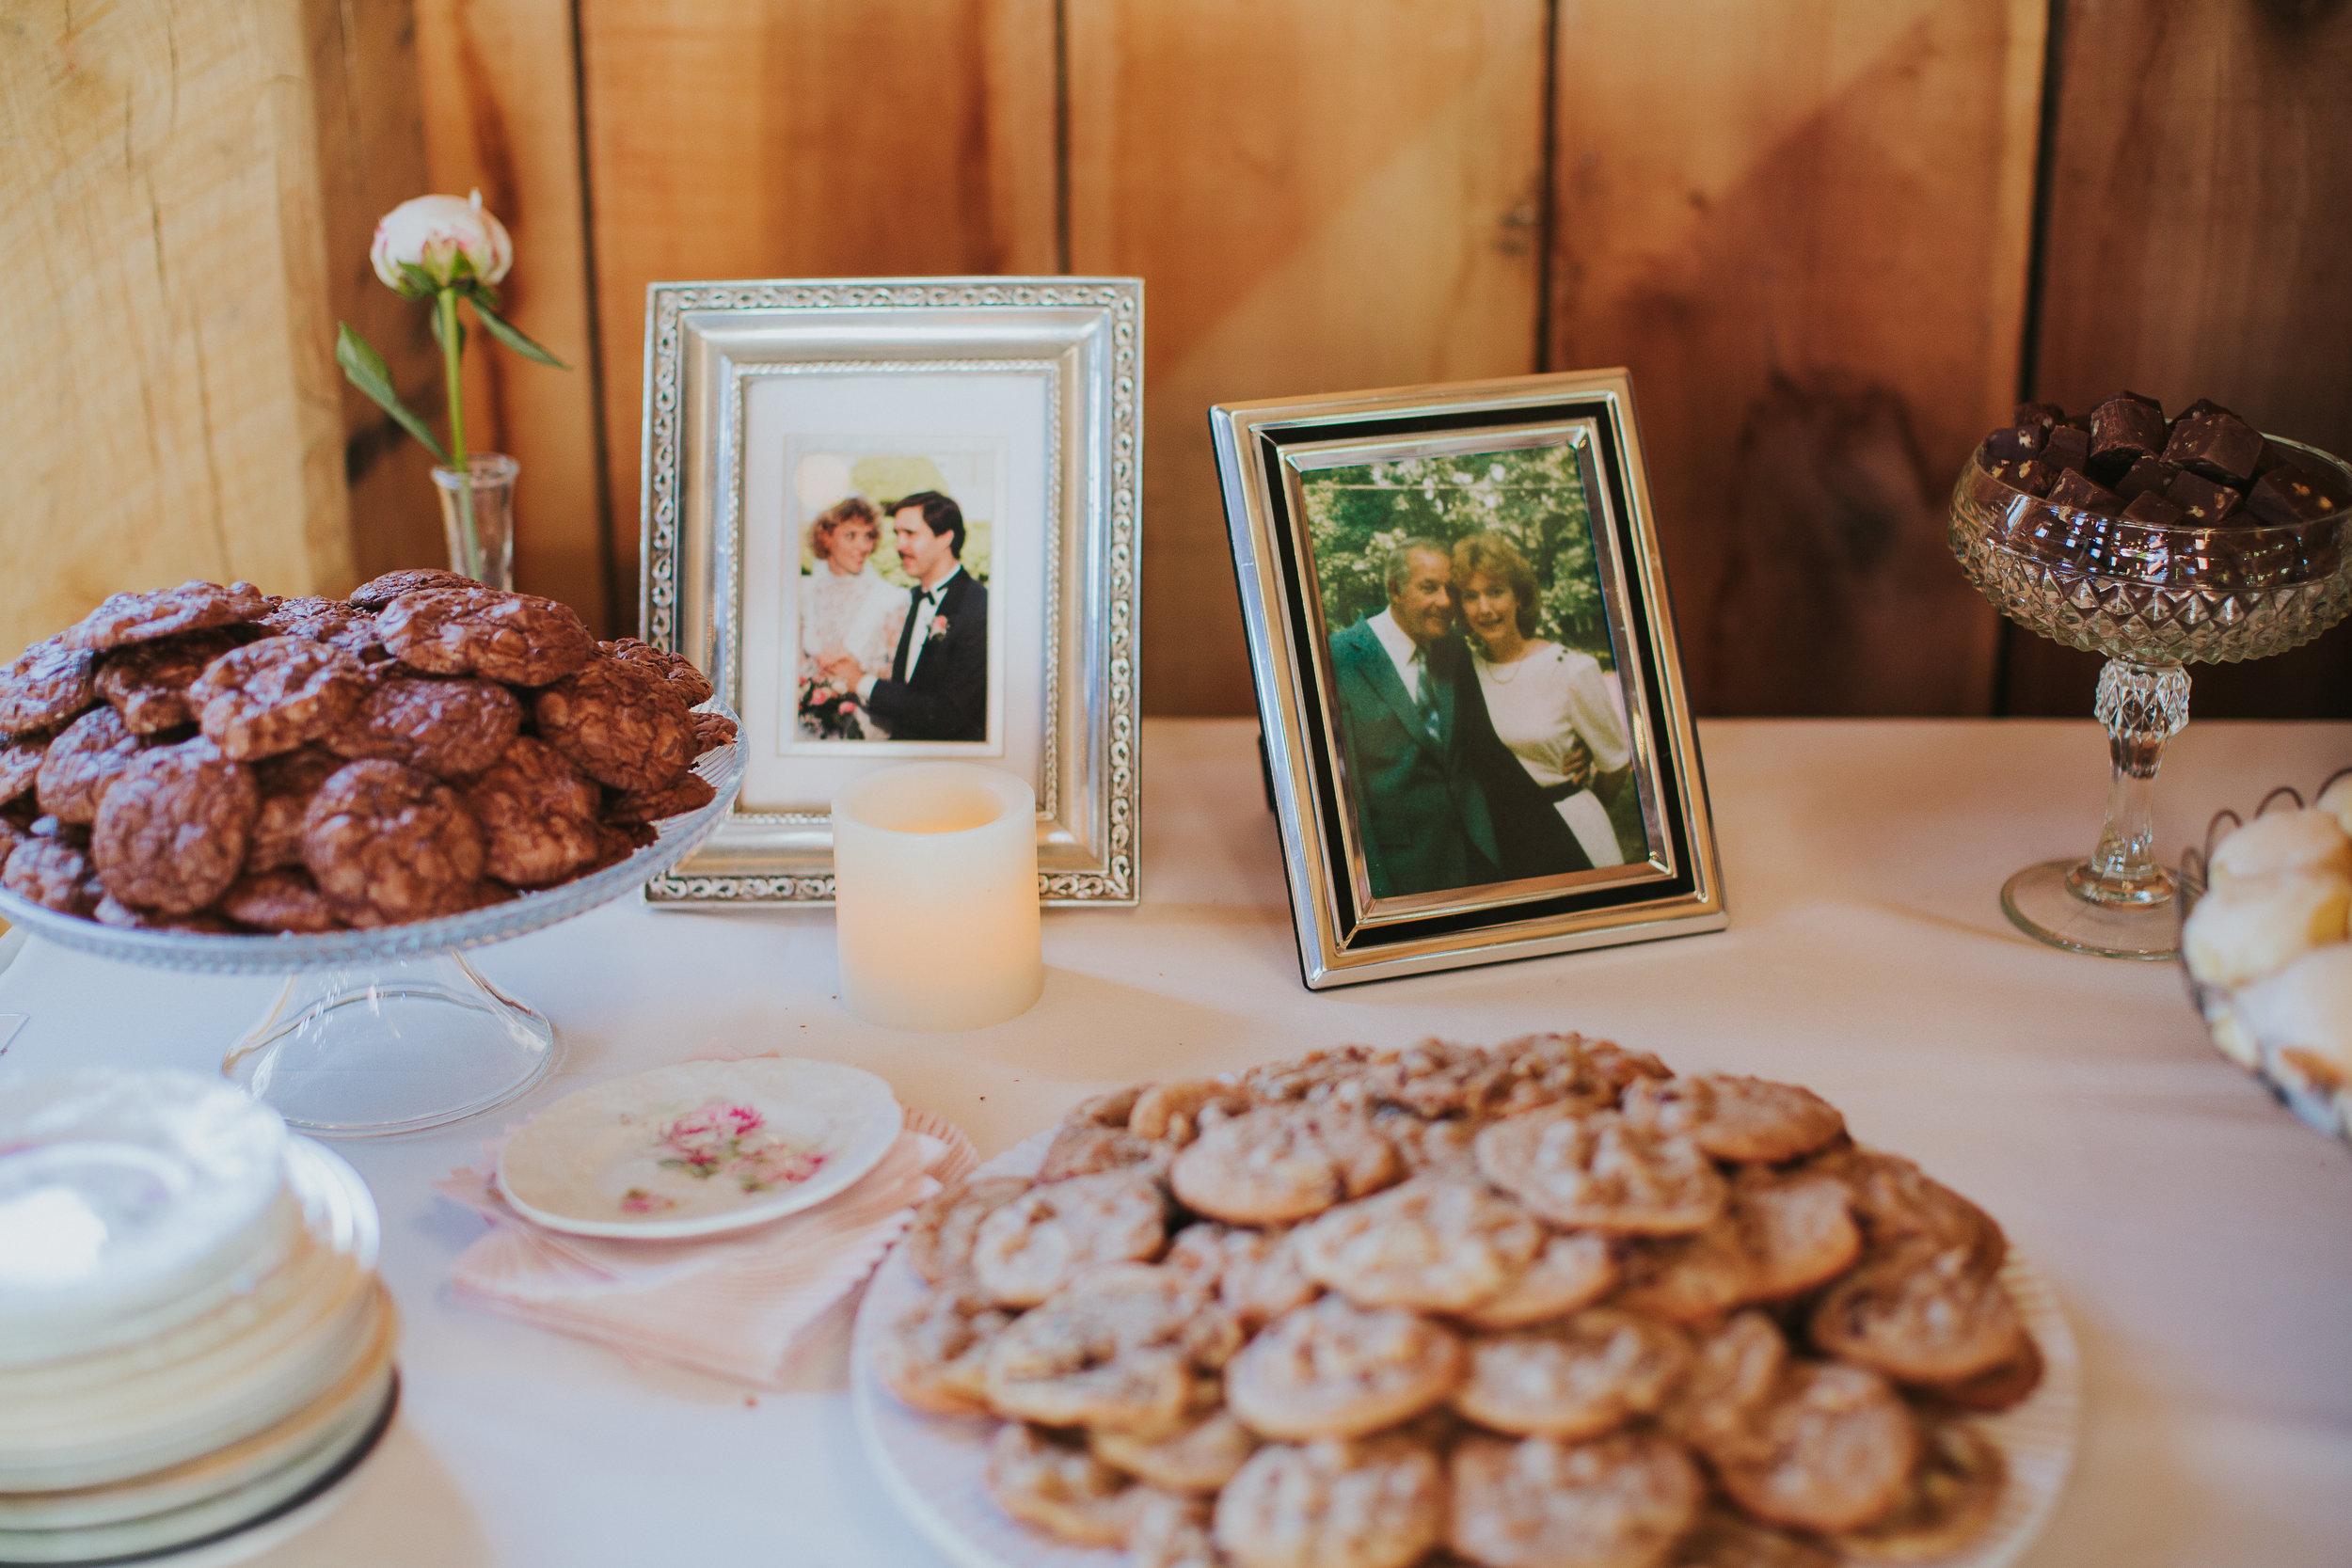 Take heed… - all ye who are about to jump into wedding panning, and do some budget planning first!